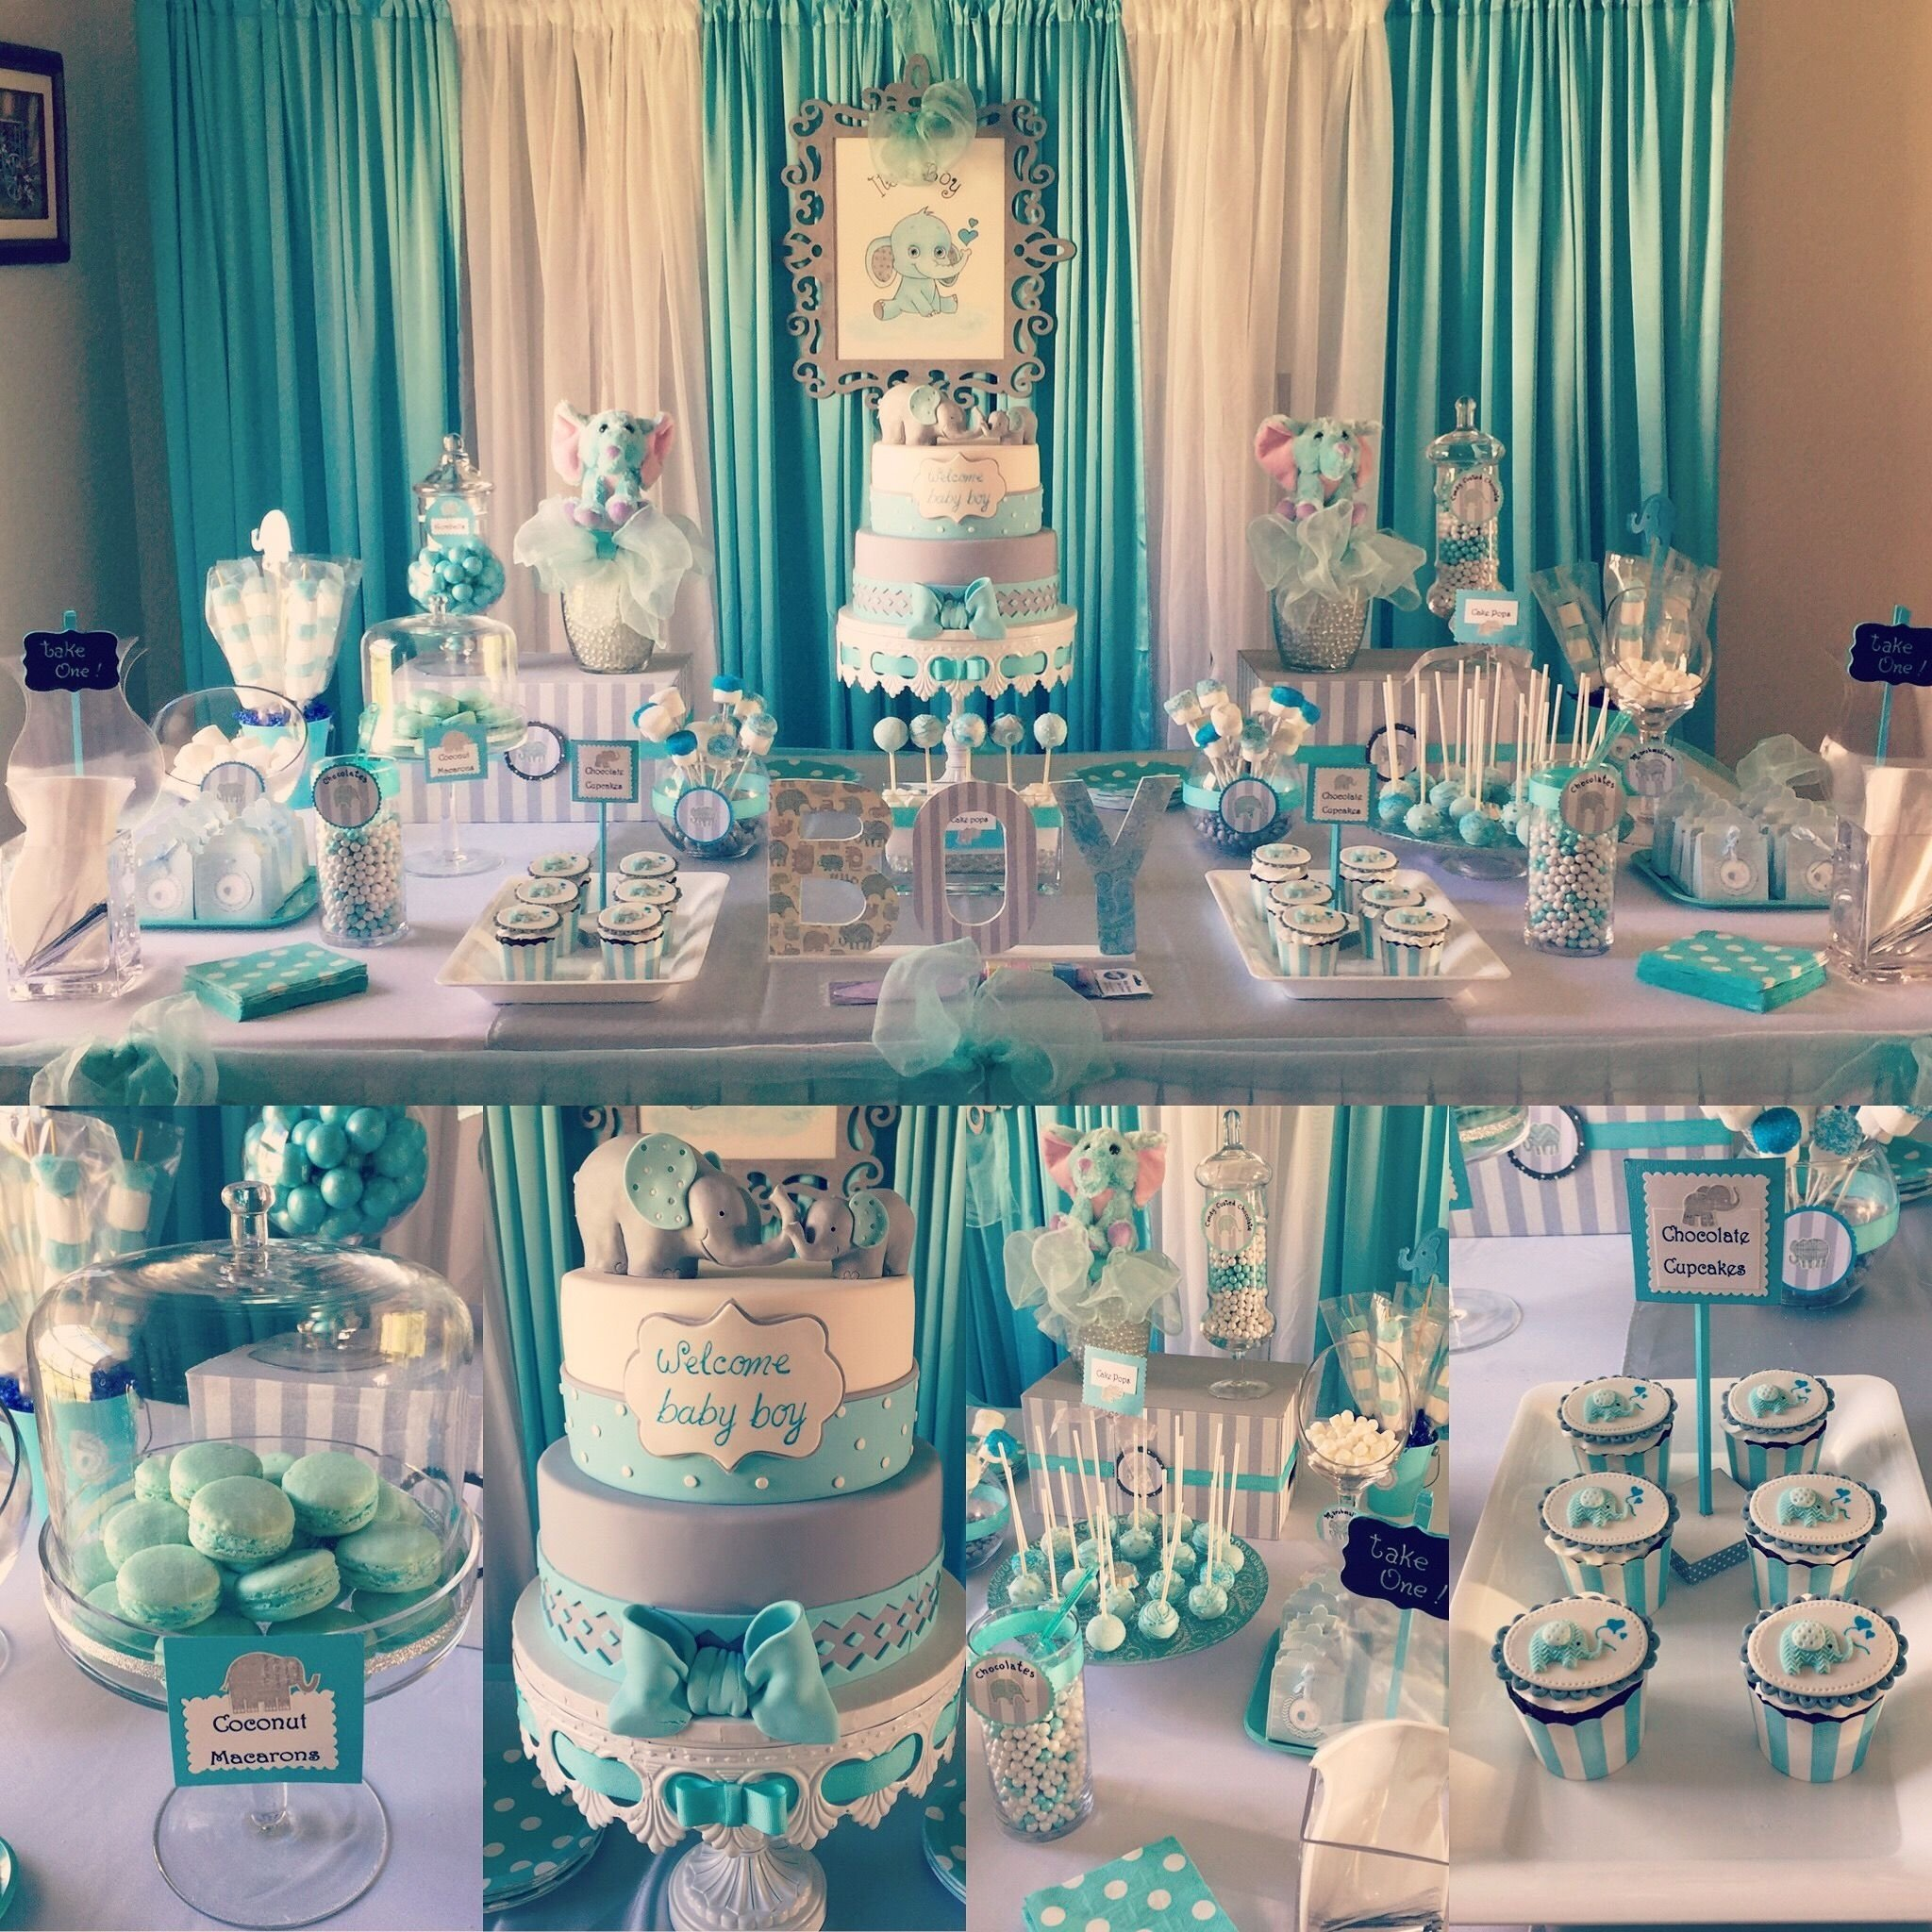 10 Attractive Baby Shower Centerpieces Ideas For Boys unique gender reveal party ideas that wont empty your wallet 12 2020